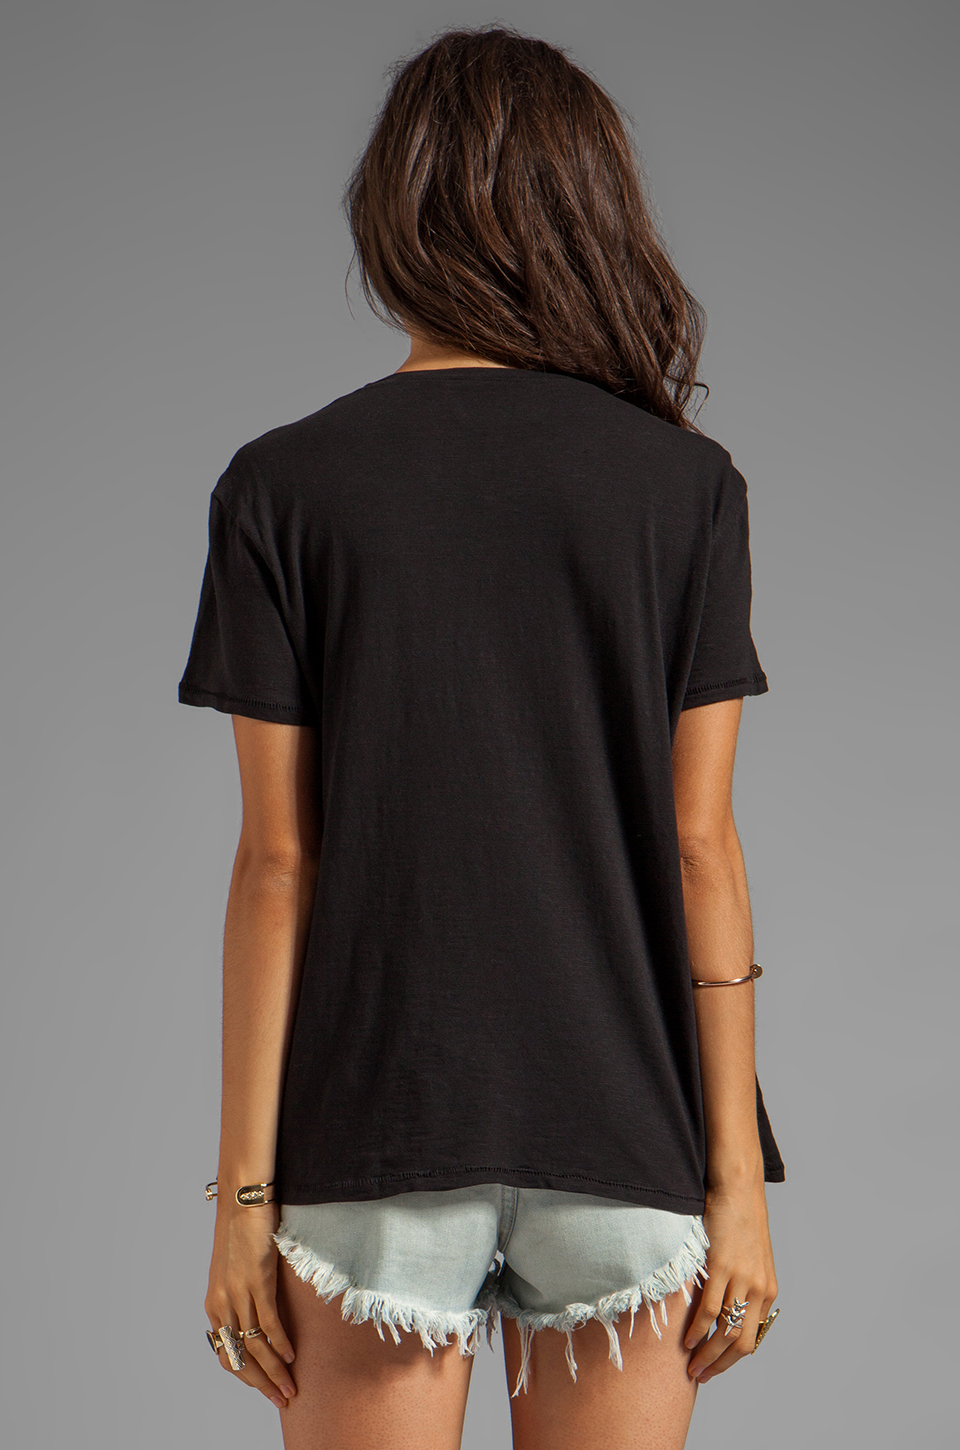 TEXTILE Elizabeth and James Slick Bowery Tee in Black/Grey